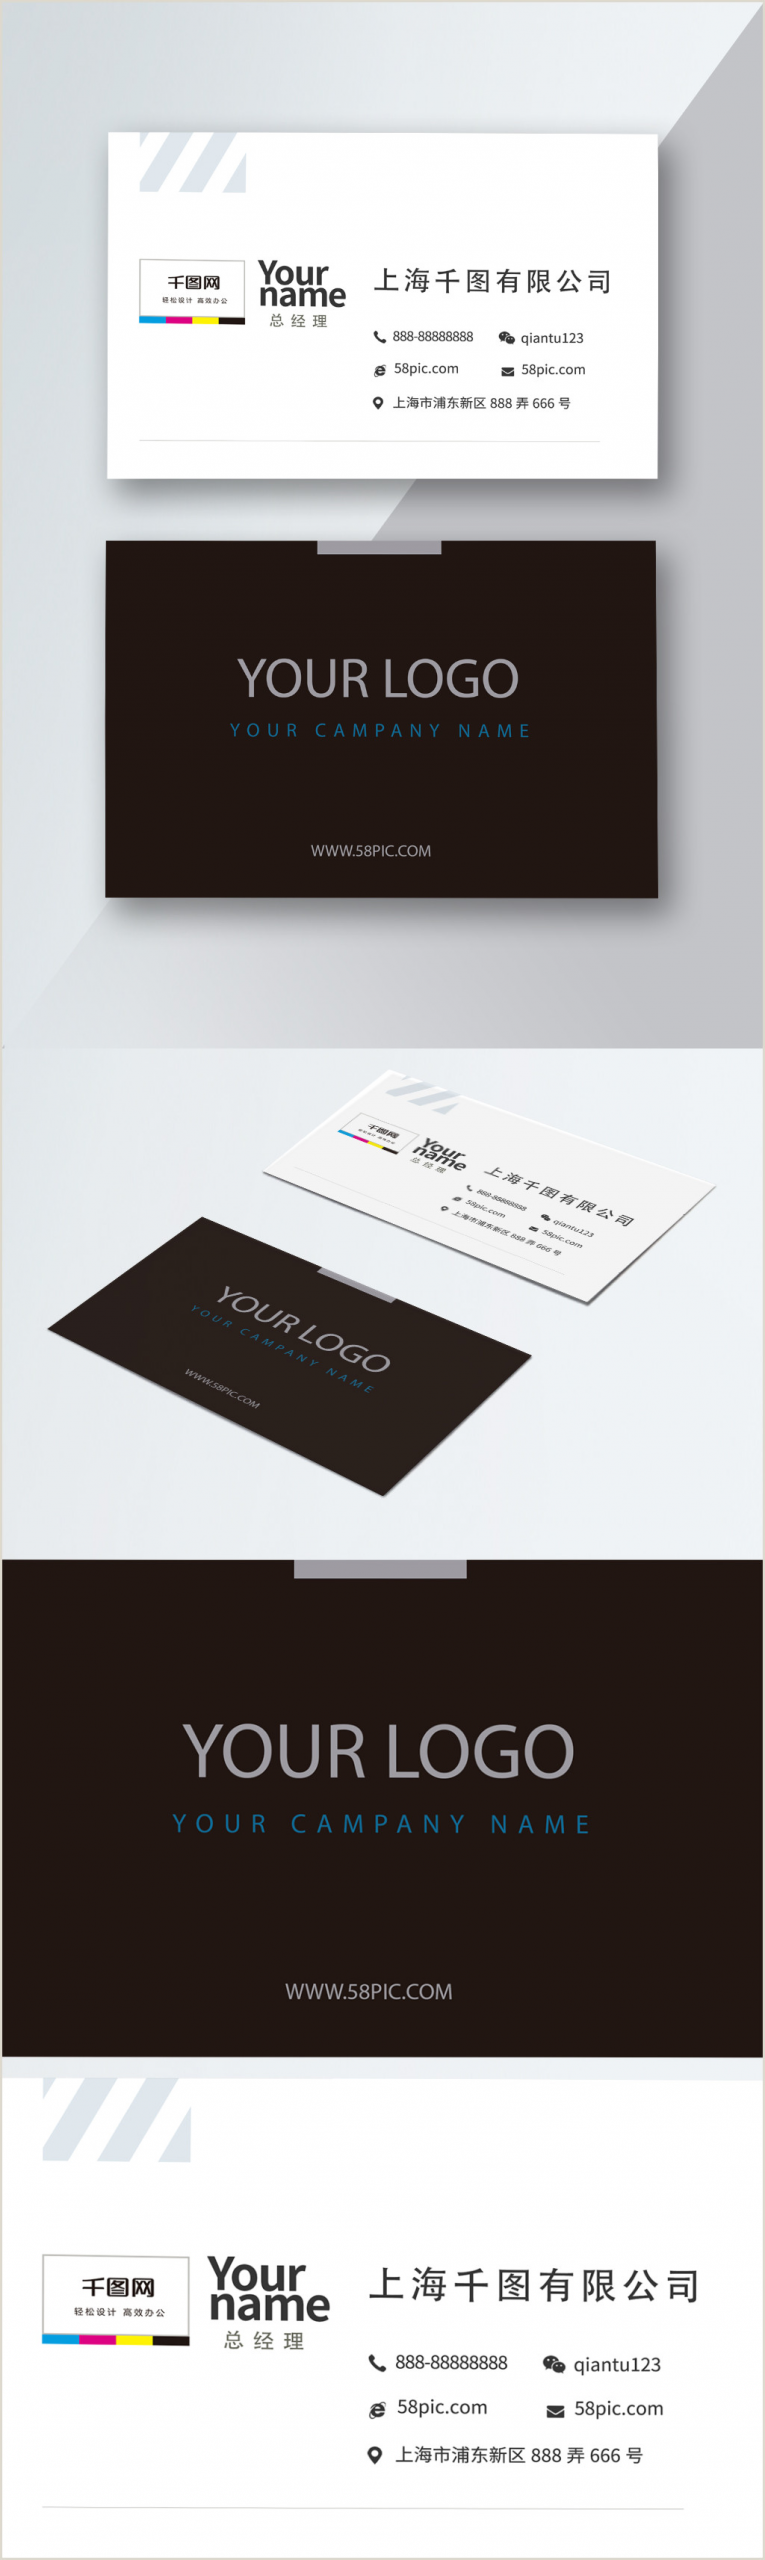 Social Business Cards Black And White Business Senior Business Card With Qr Code